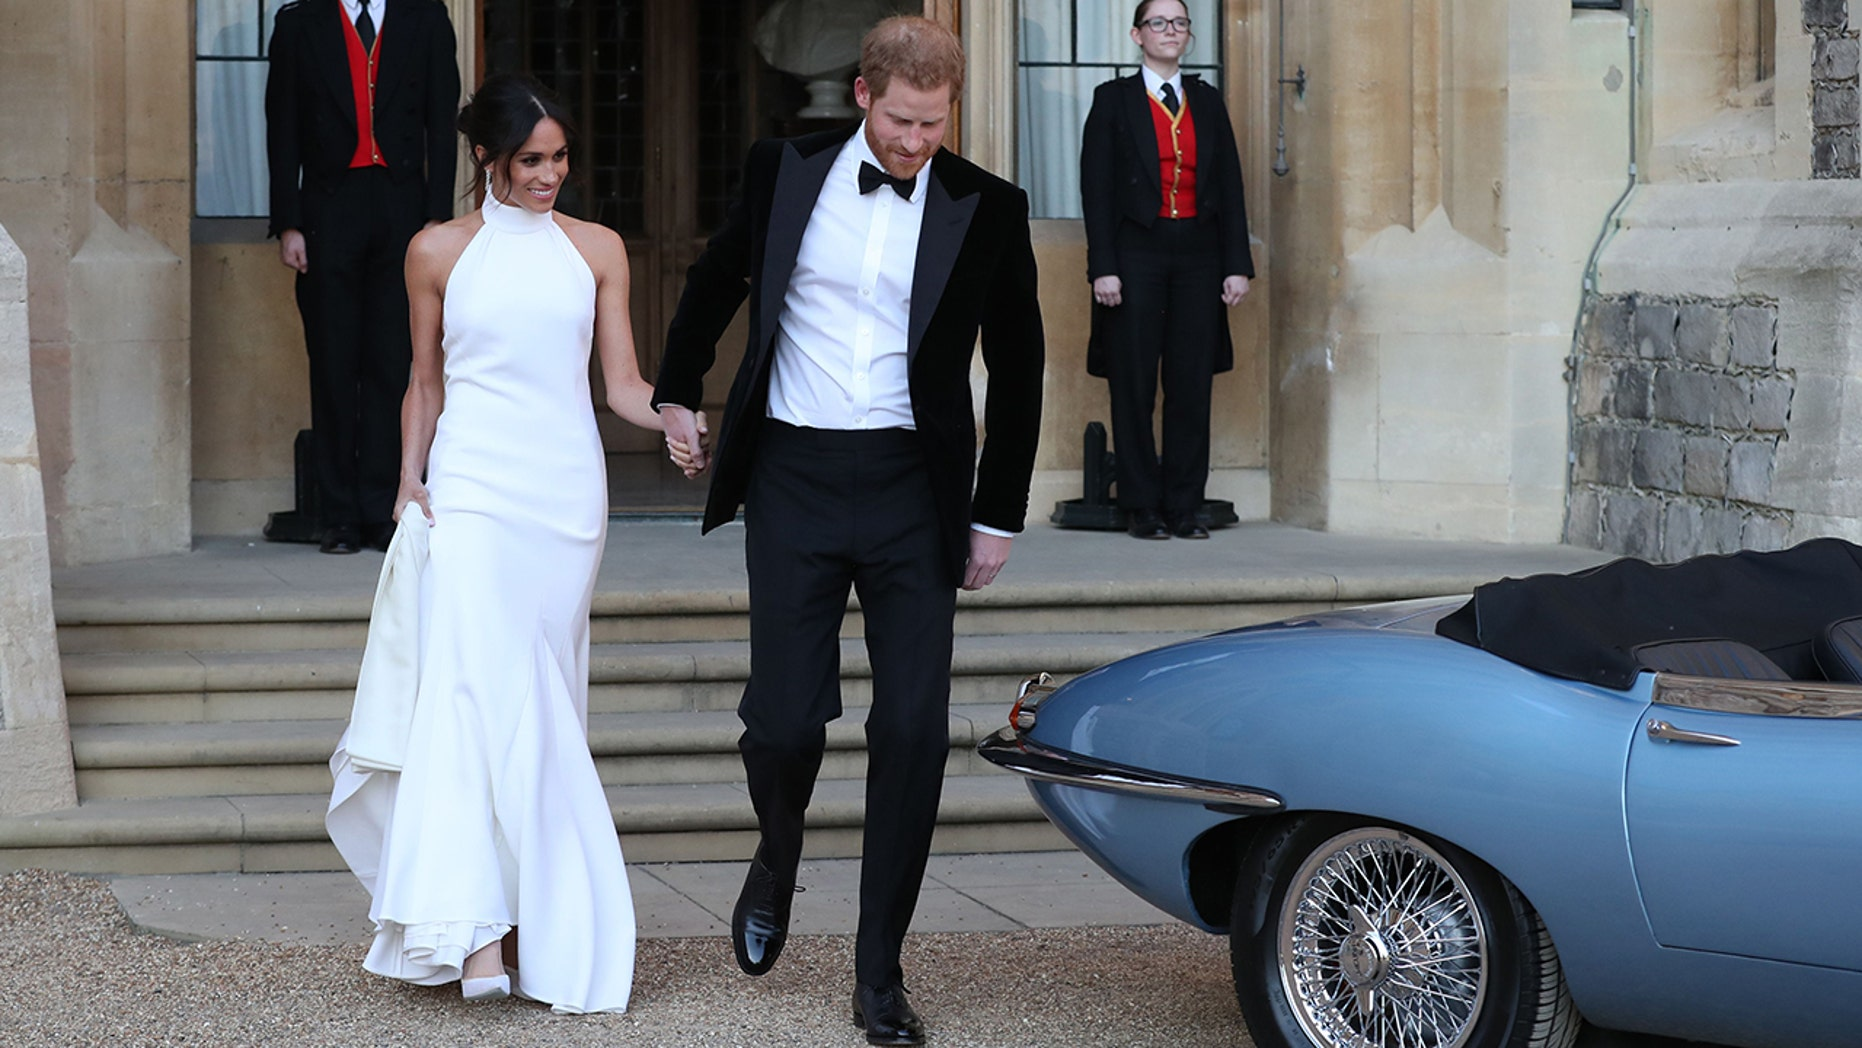 Meghan Markle's stunning Stella McCartney wedding reception dress won't be on display in an upcoming exhibit.